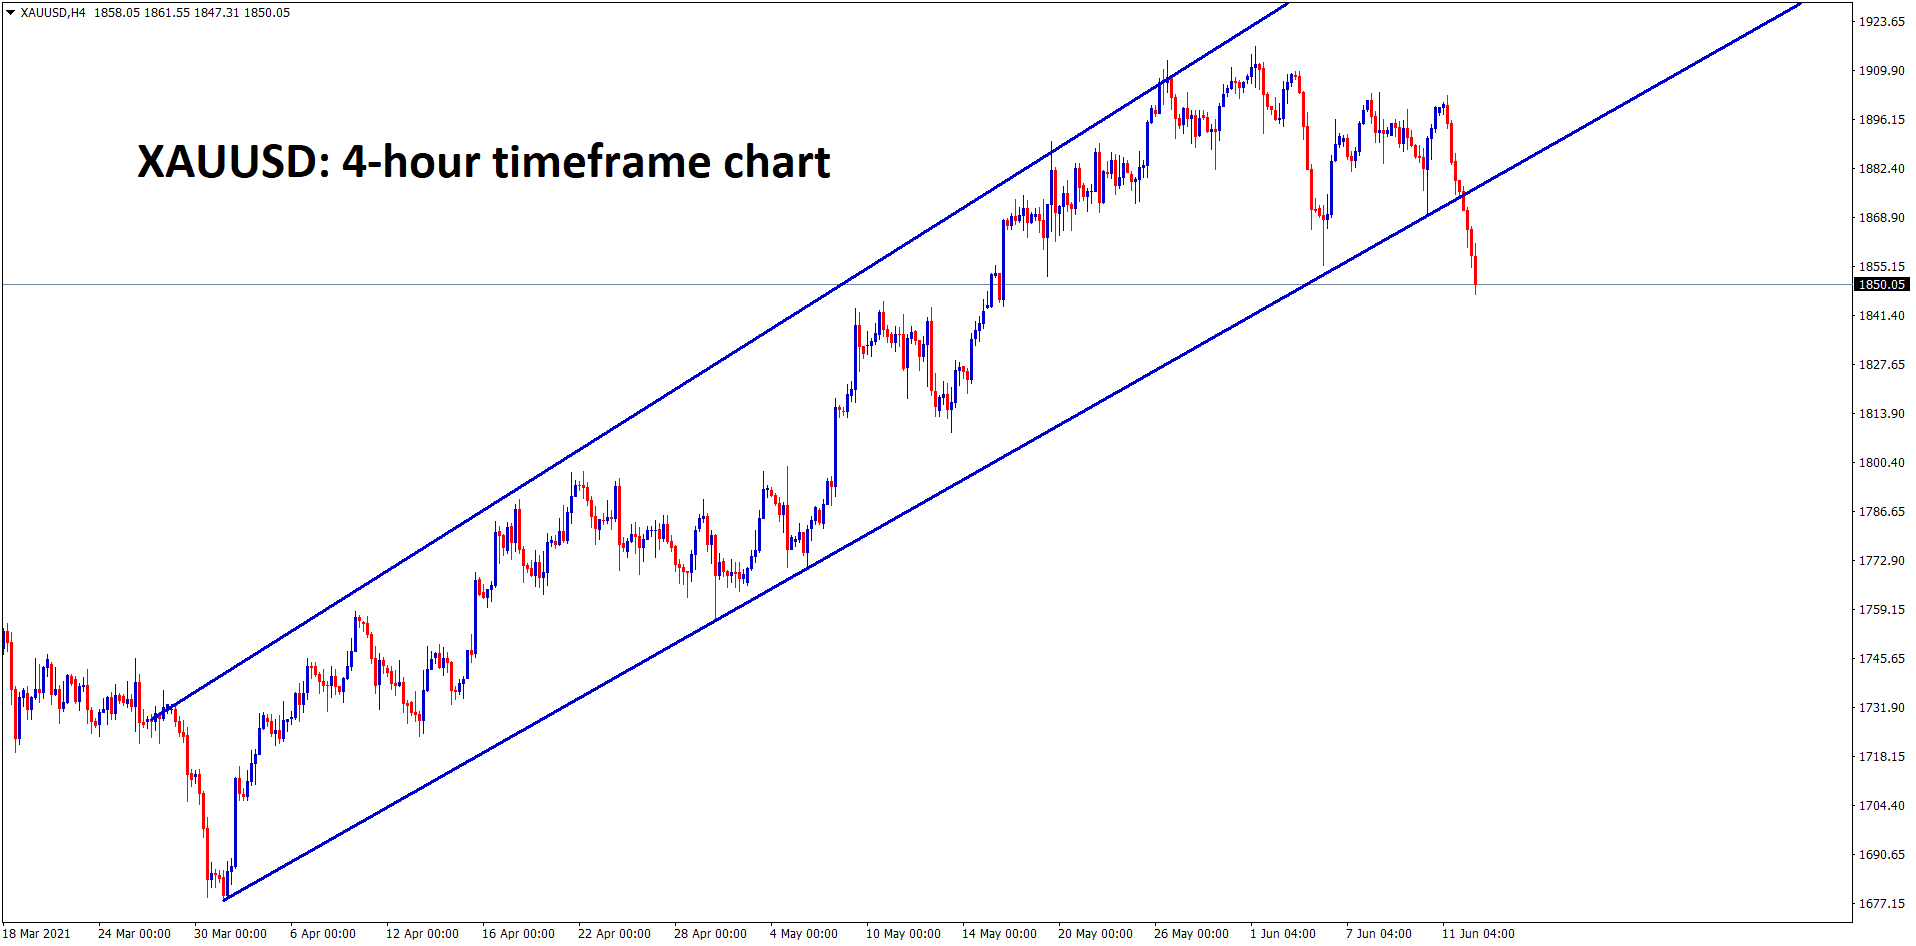 Gold price has broken the bottom of the Ascending Channel